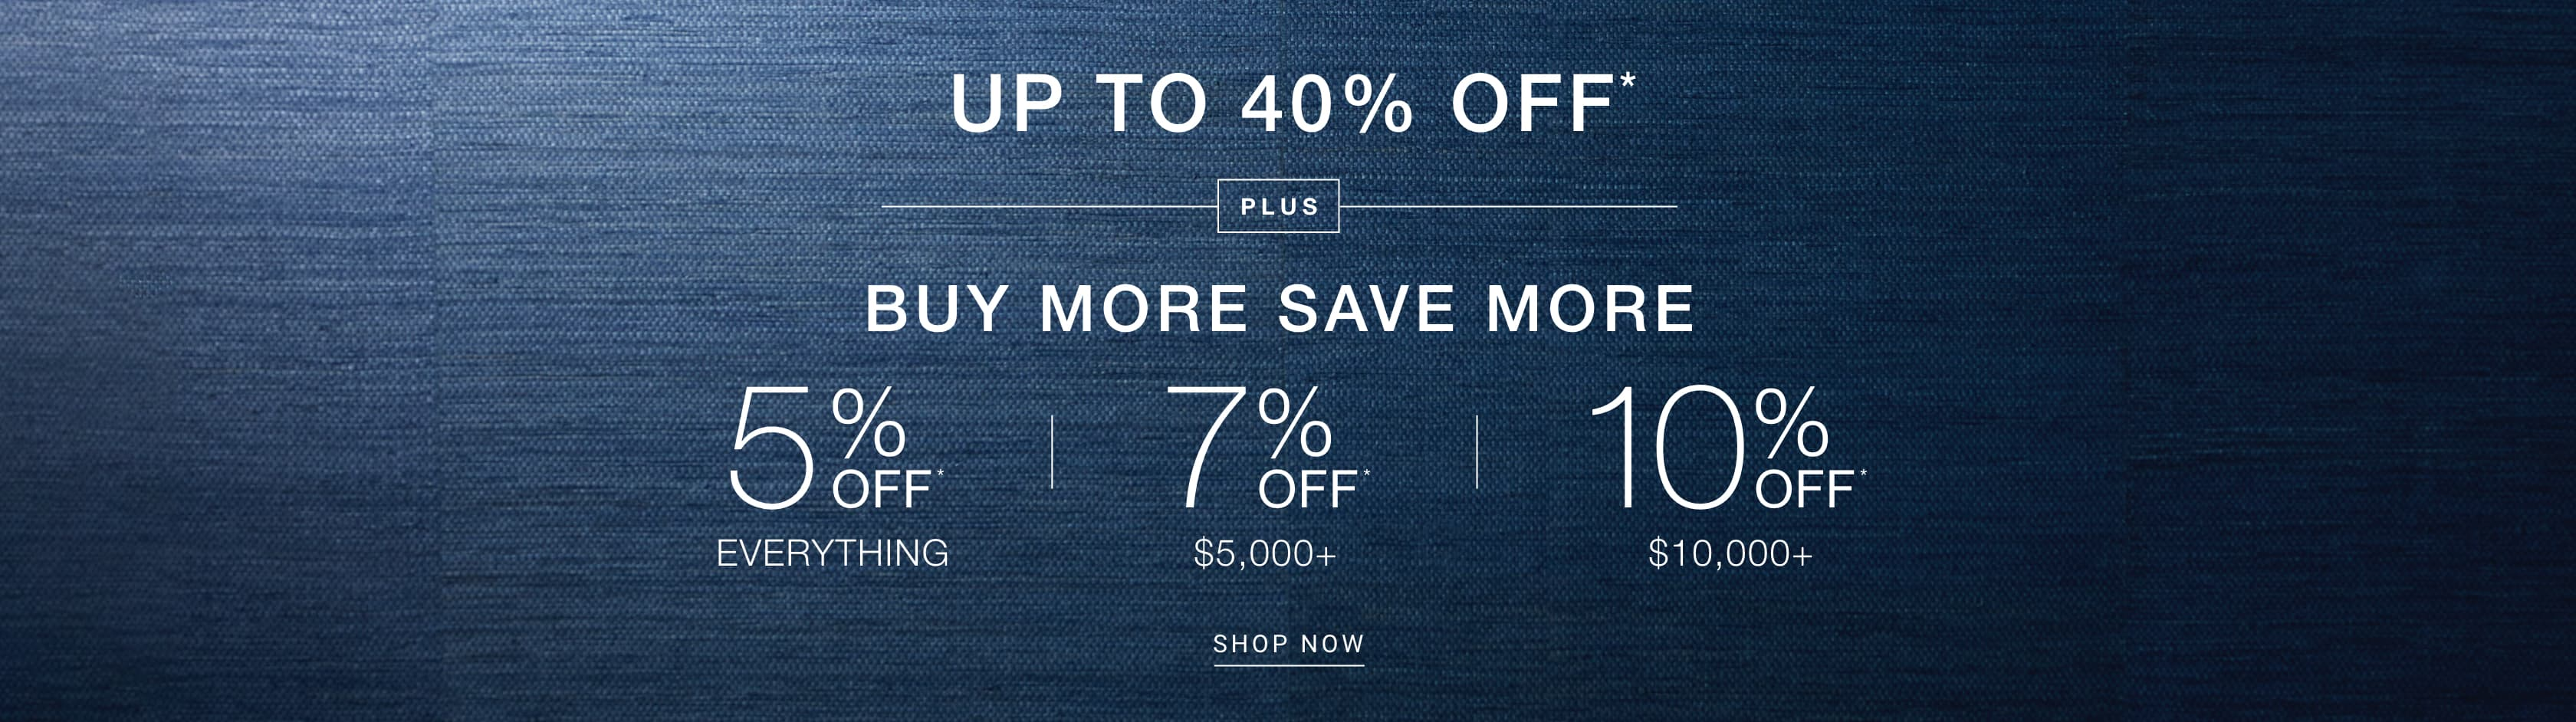 Buy More, Save More - up to 10% Off